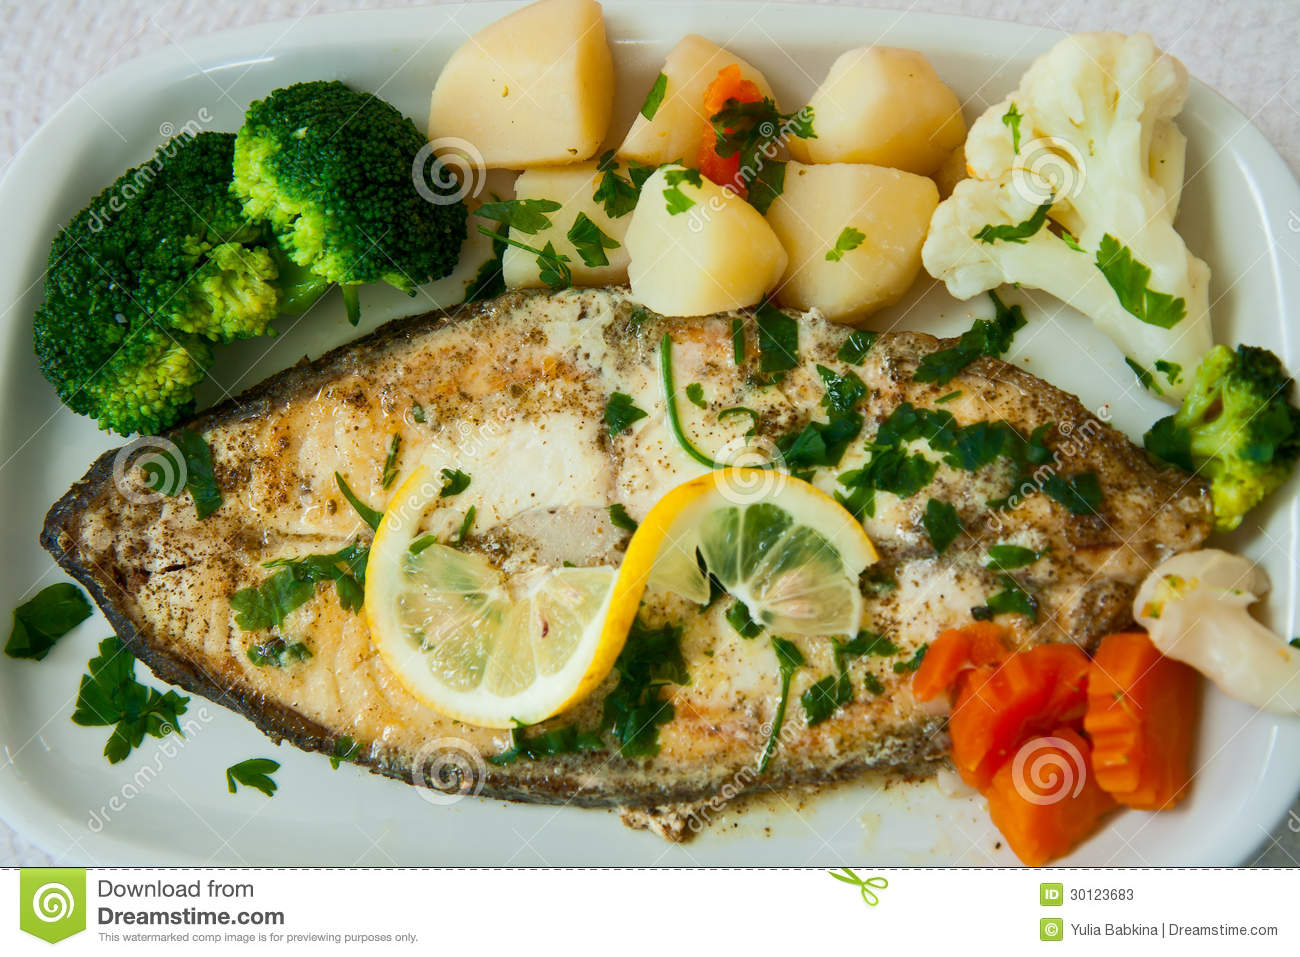 Fried fish with vegetables stock photos image 30123683 for Fish with vegetables